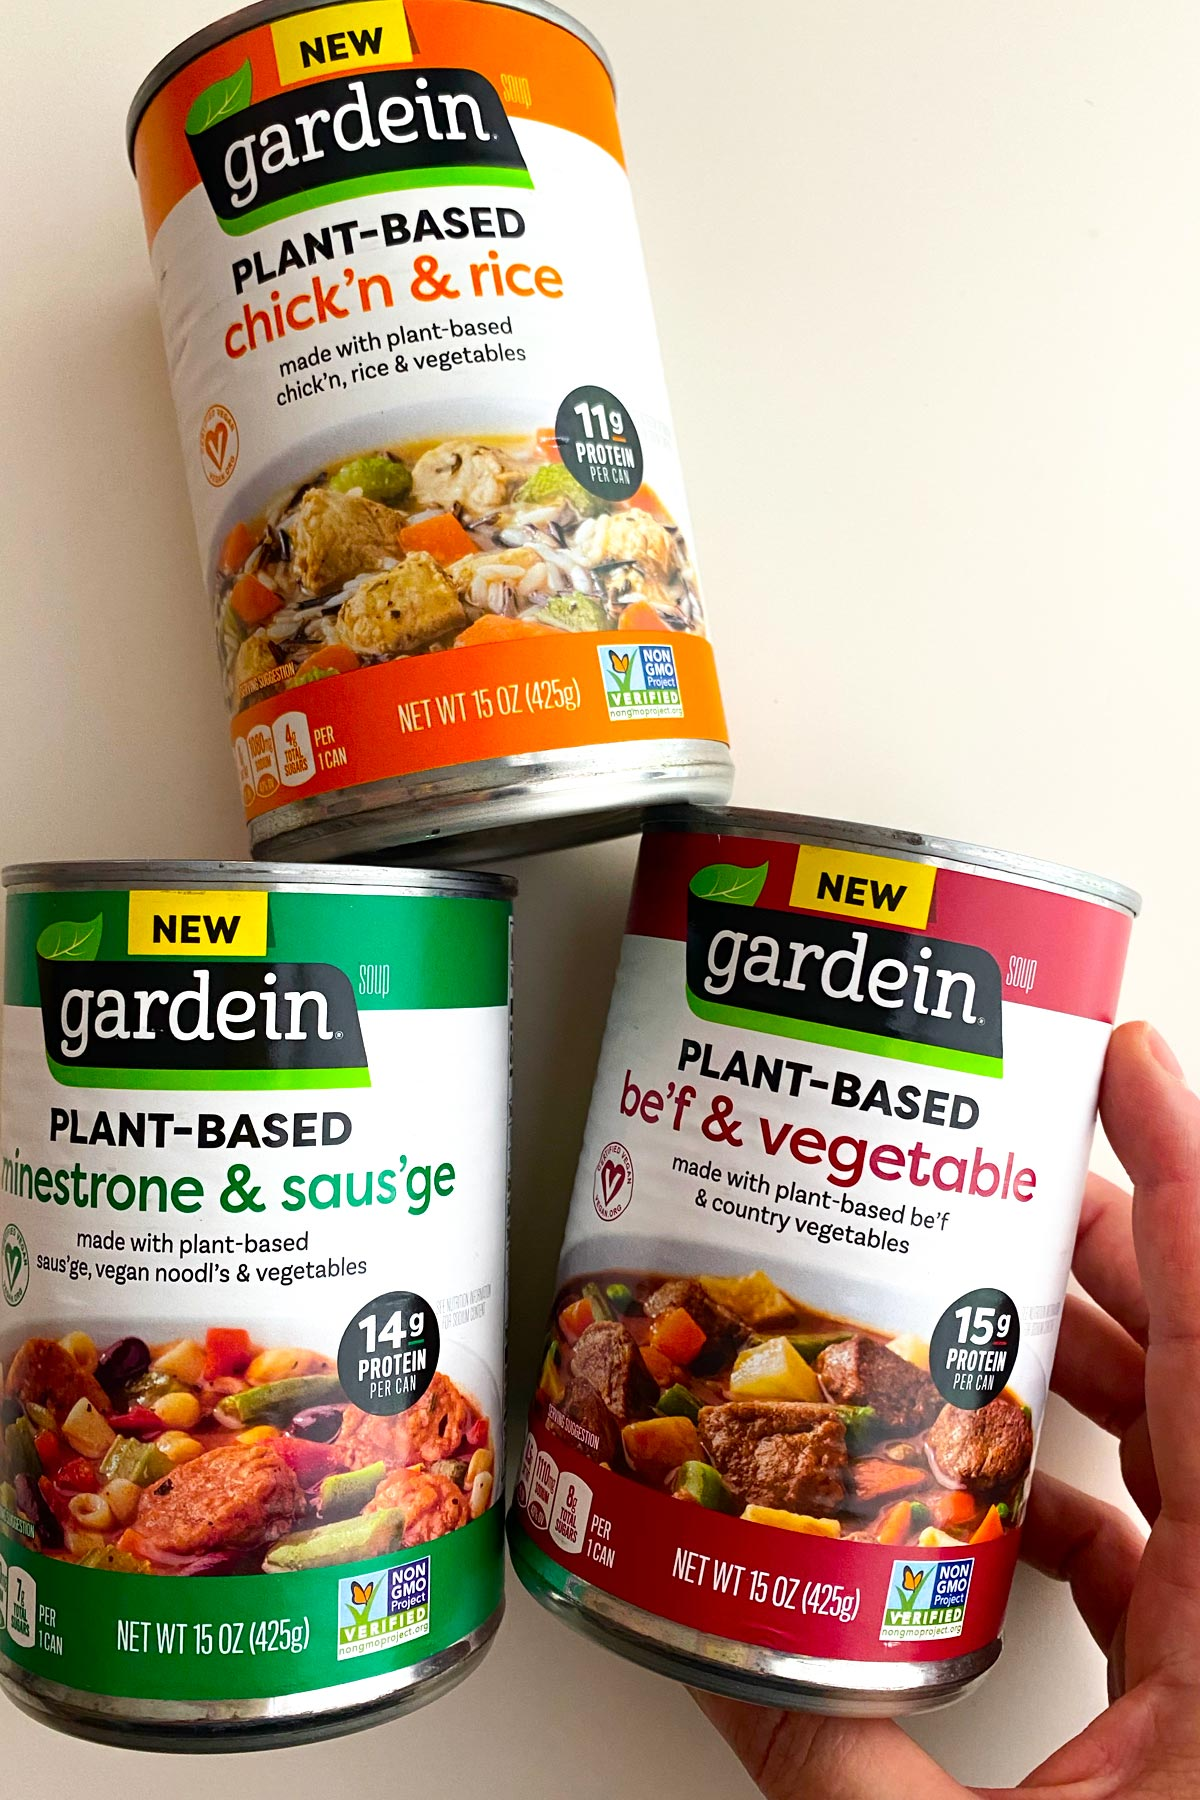 3 varieties of Gardein canned soups: chicken and rice, minestrone and sausage, and beef and vegetable